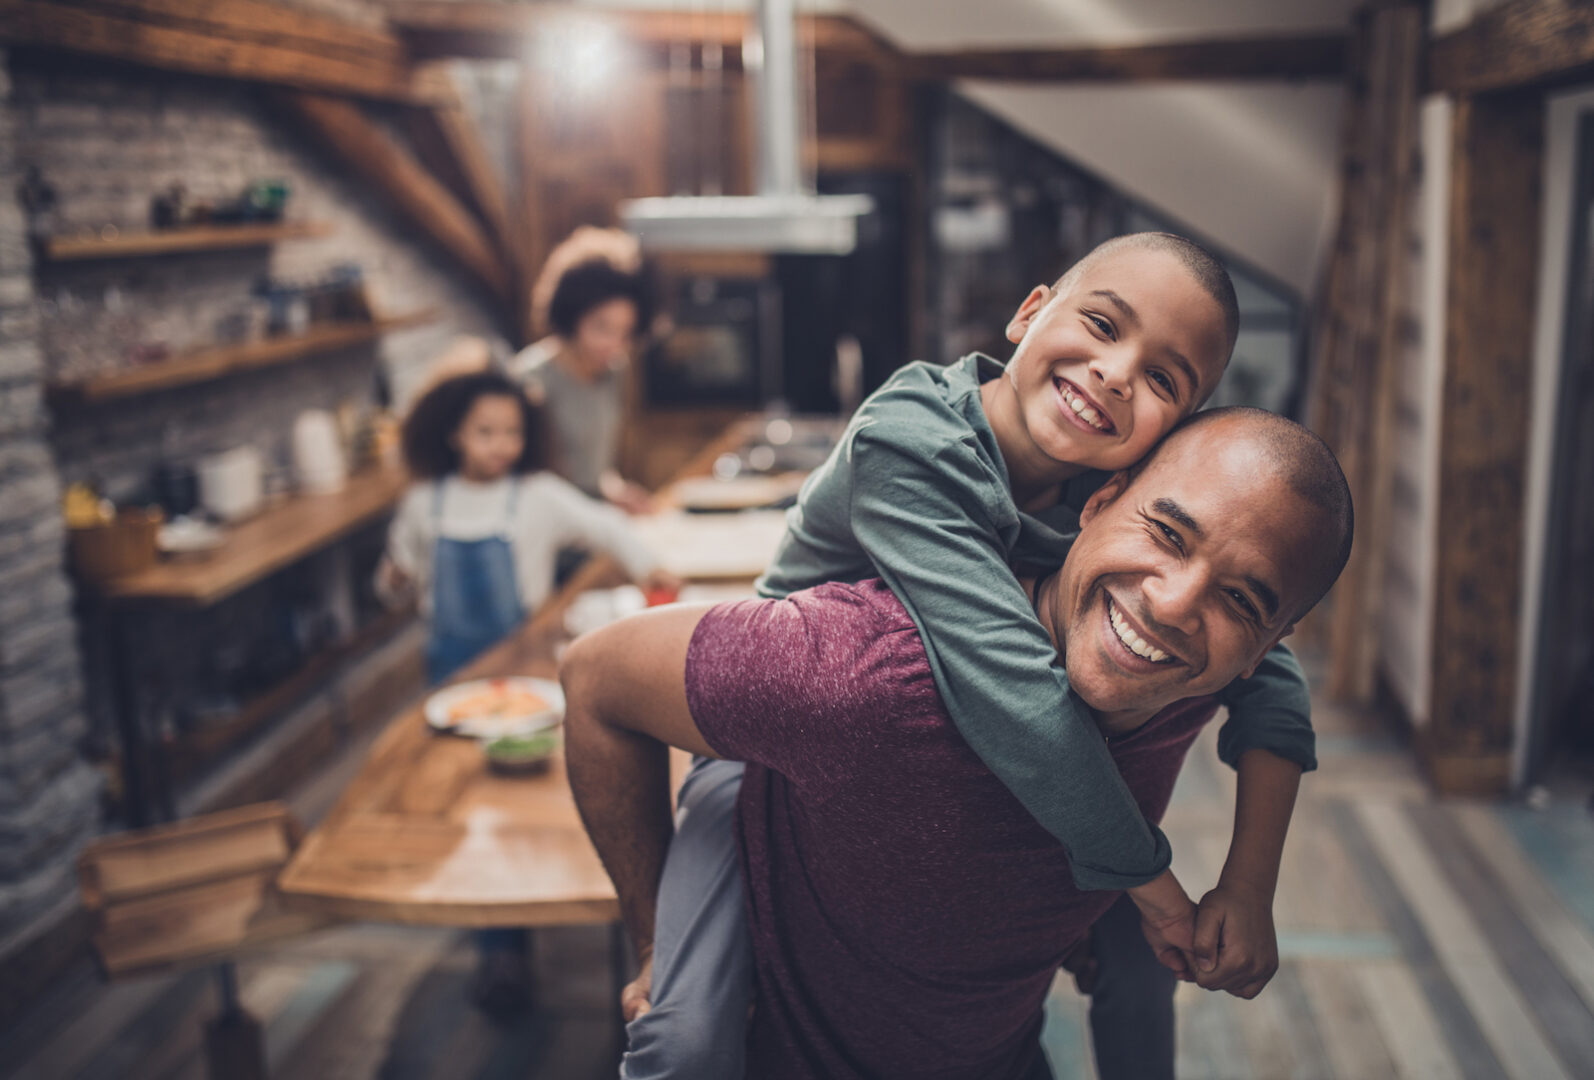 Young Black father helping son get back to normal after COVID